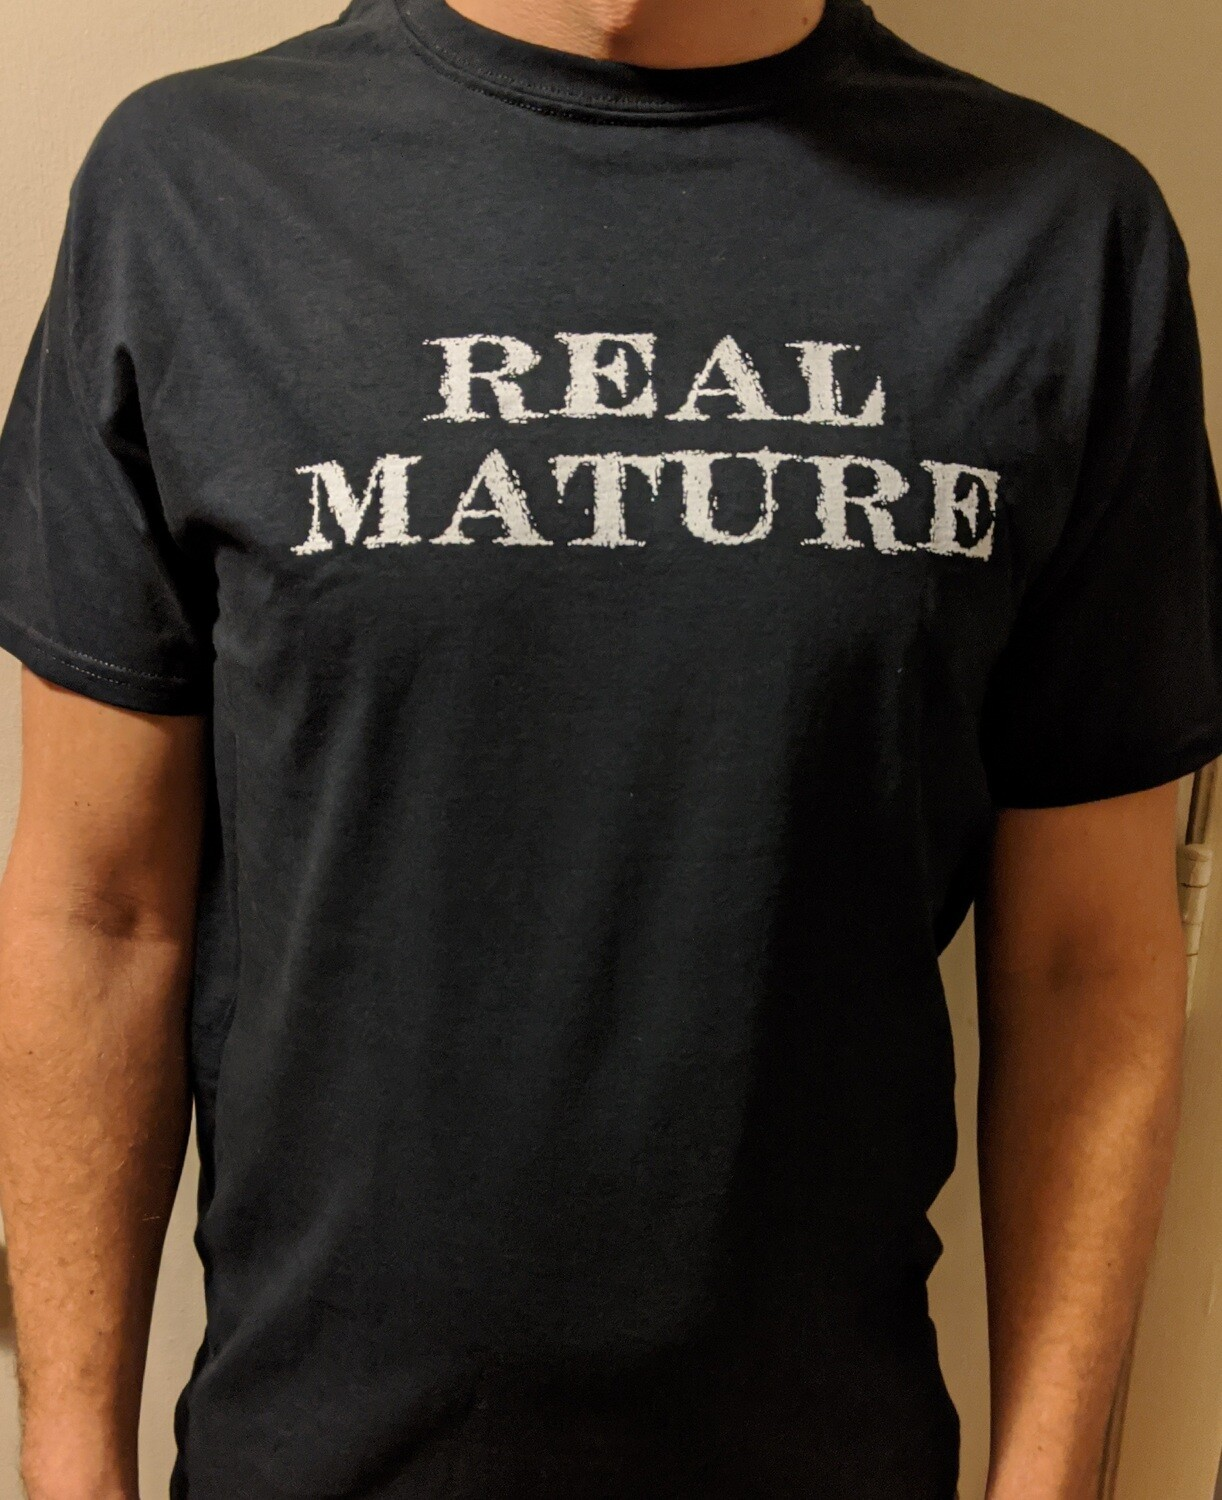 Real Mature - Crew Neck (Men's Sizes)